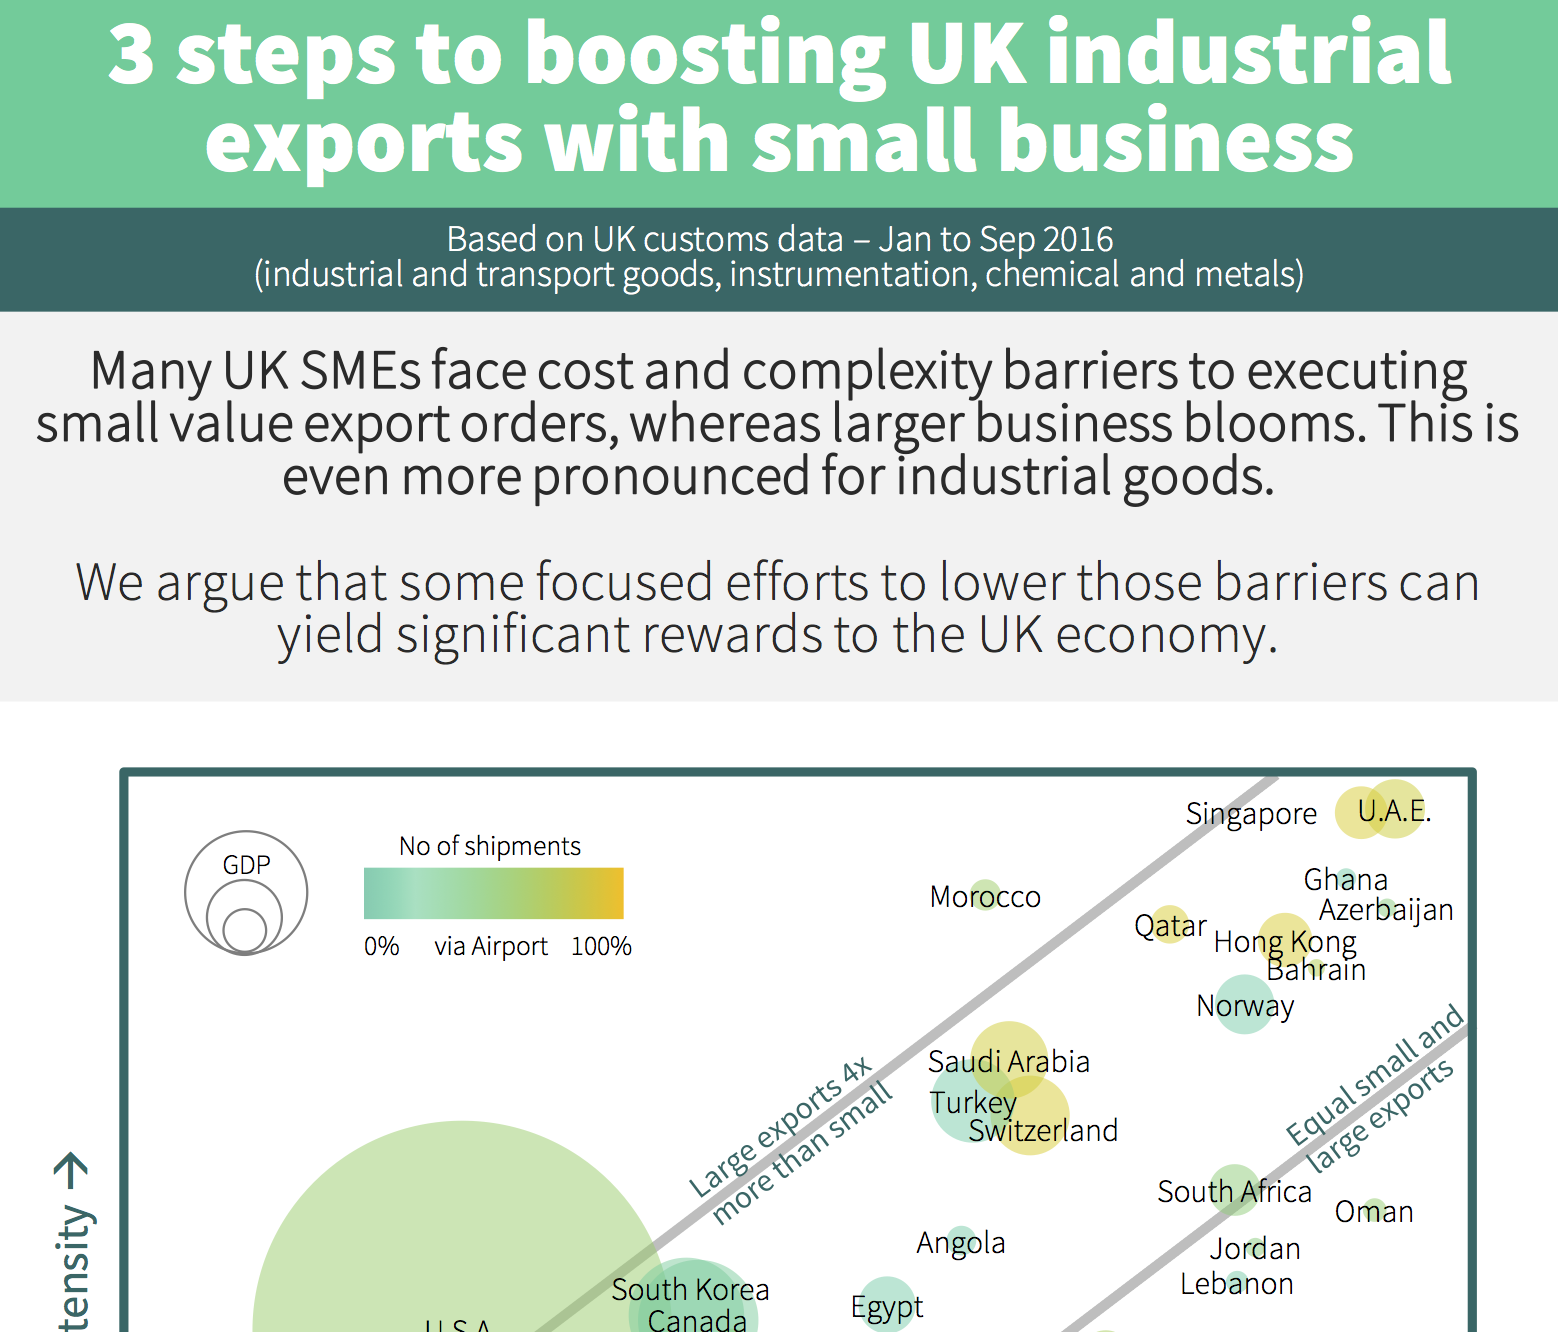 Infographic about small business share of UK industrial exports